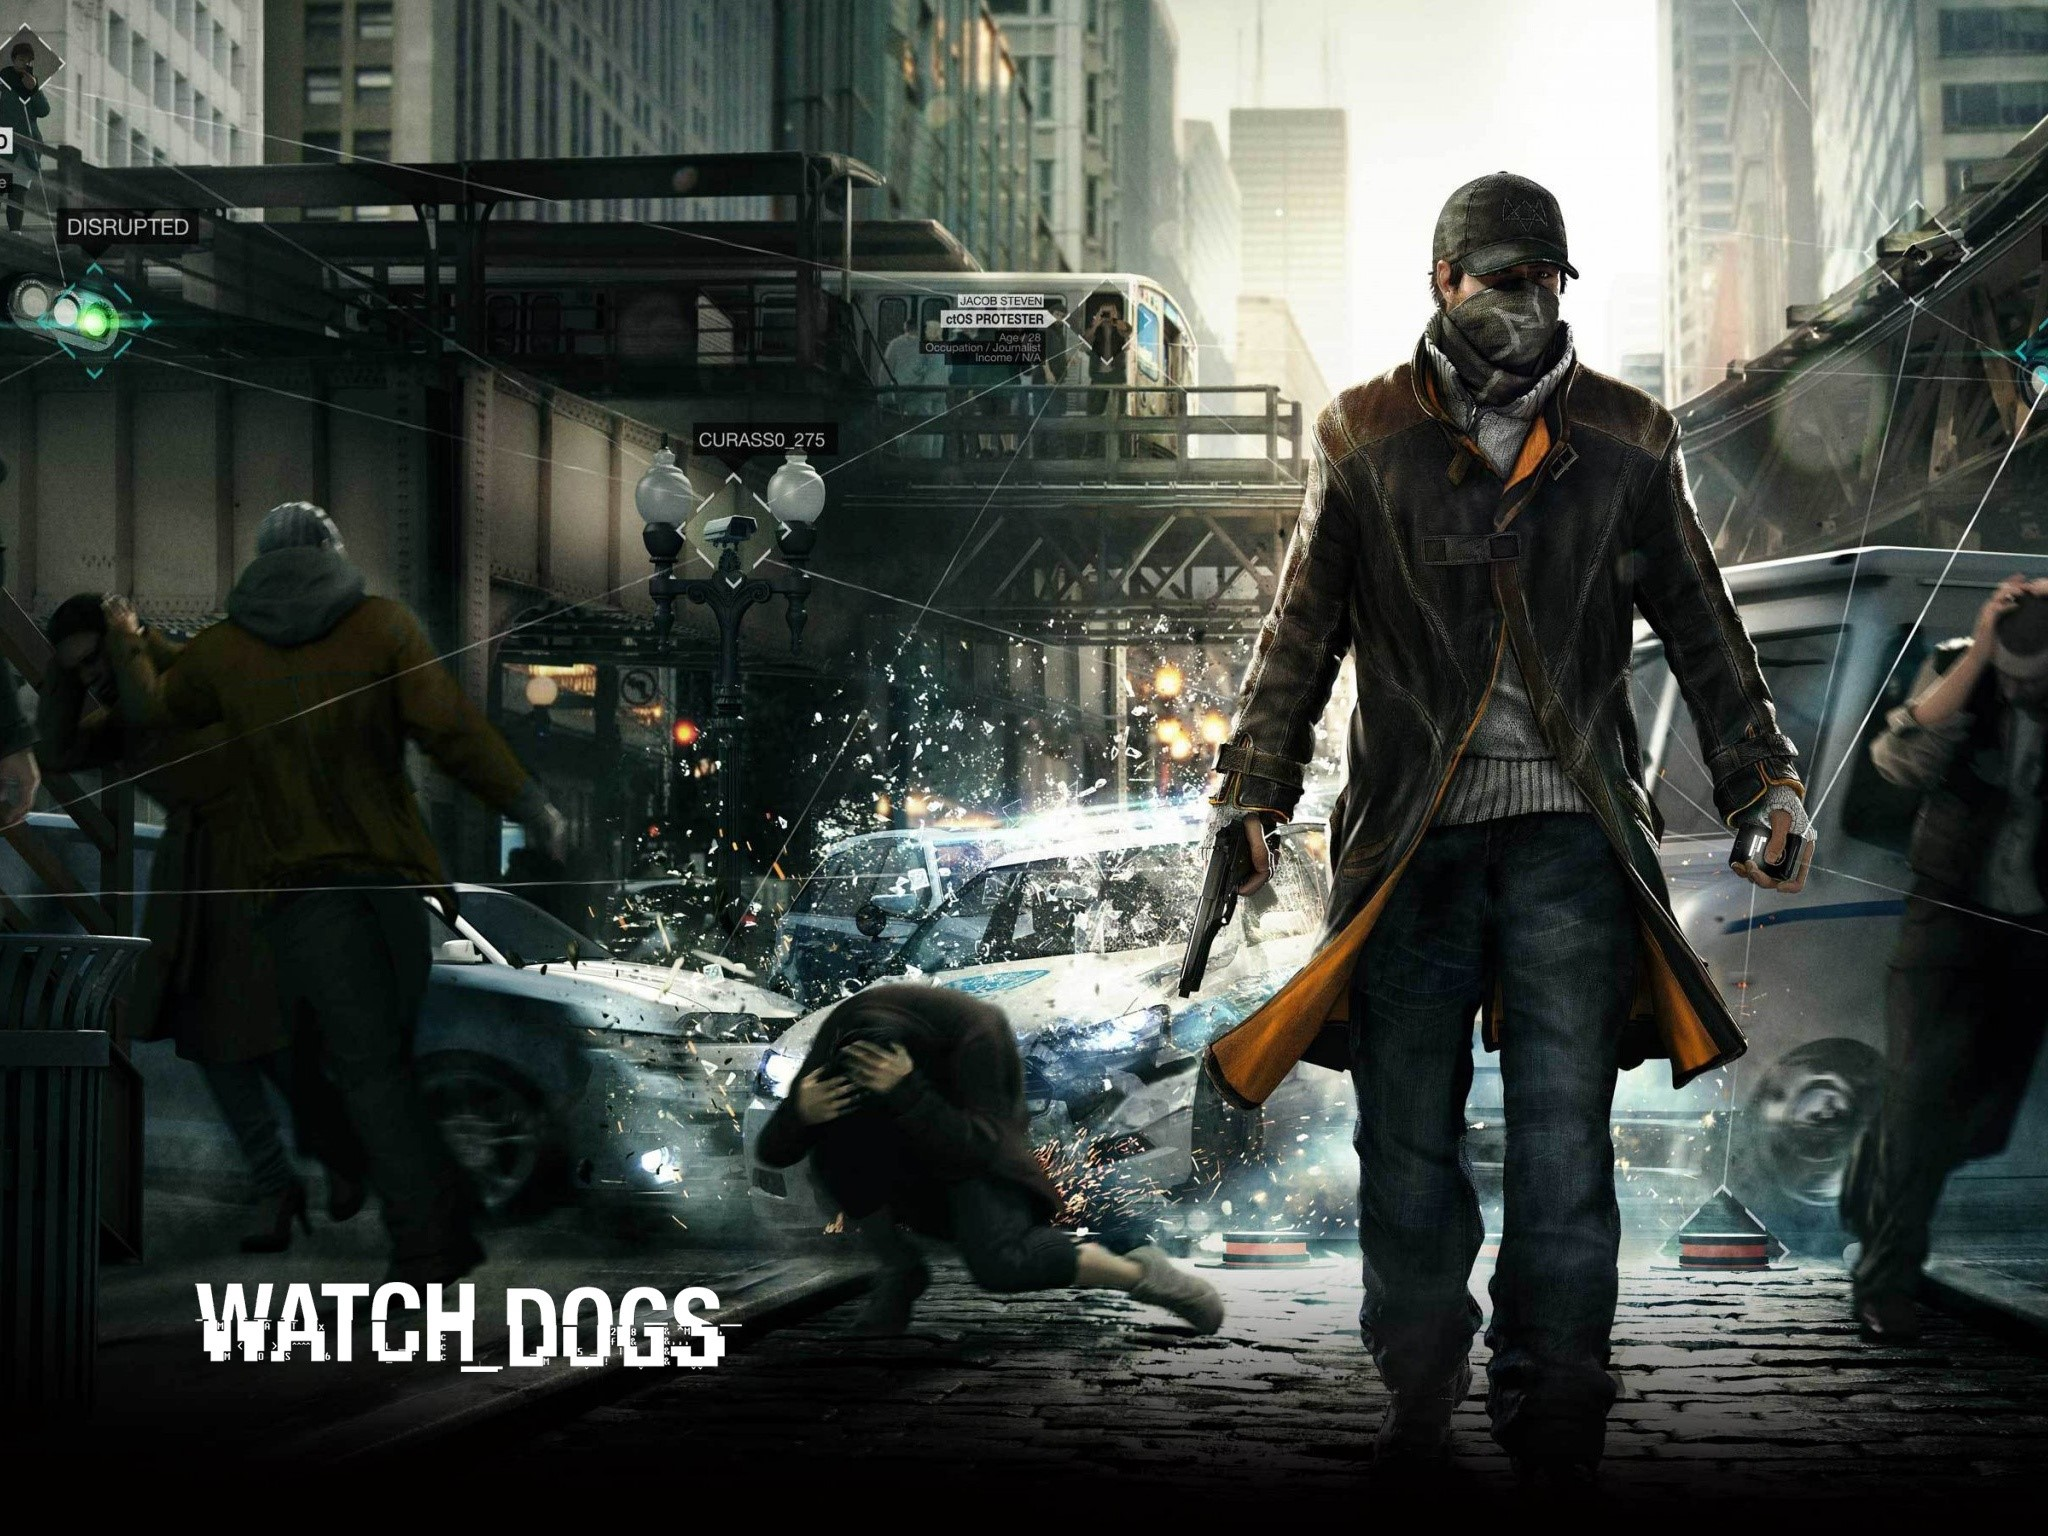 Wallpaper Watch dogs game